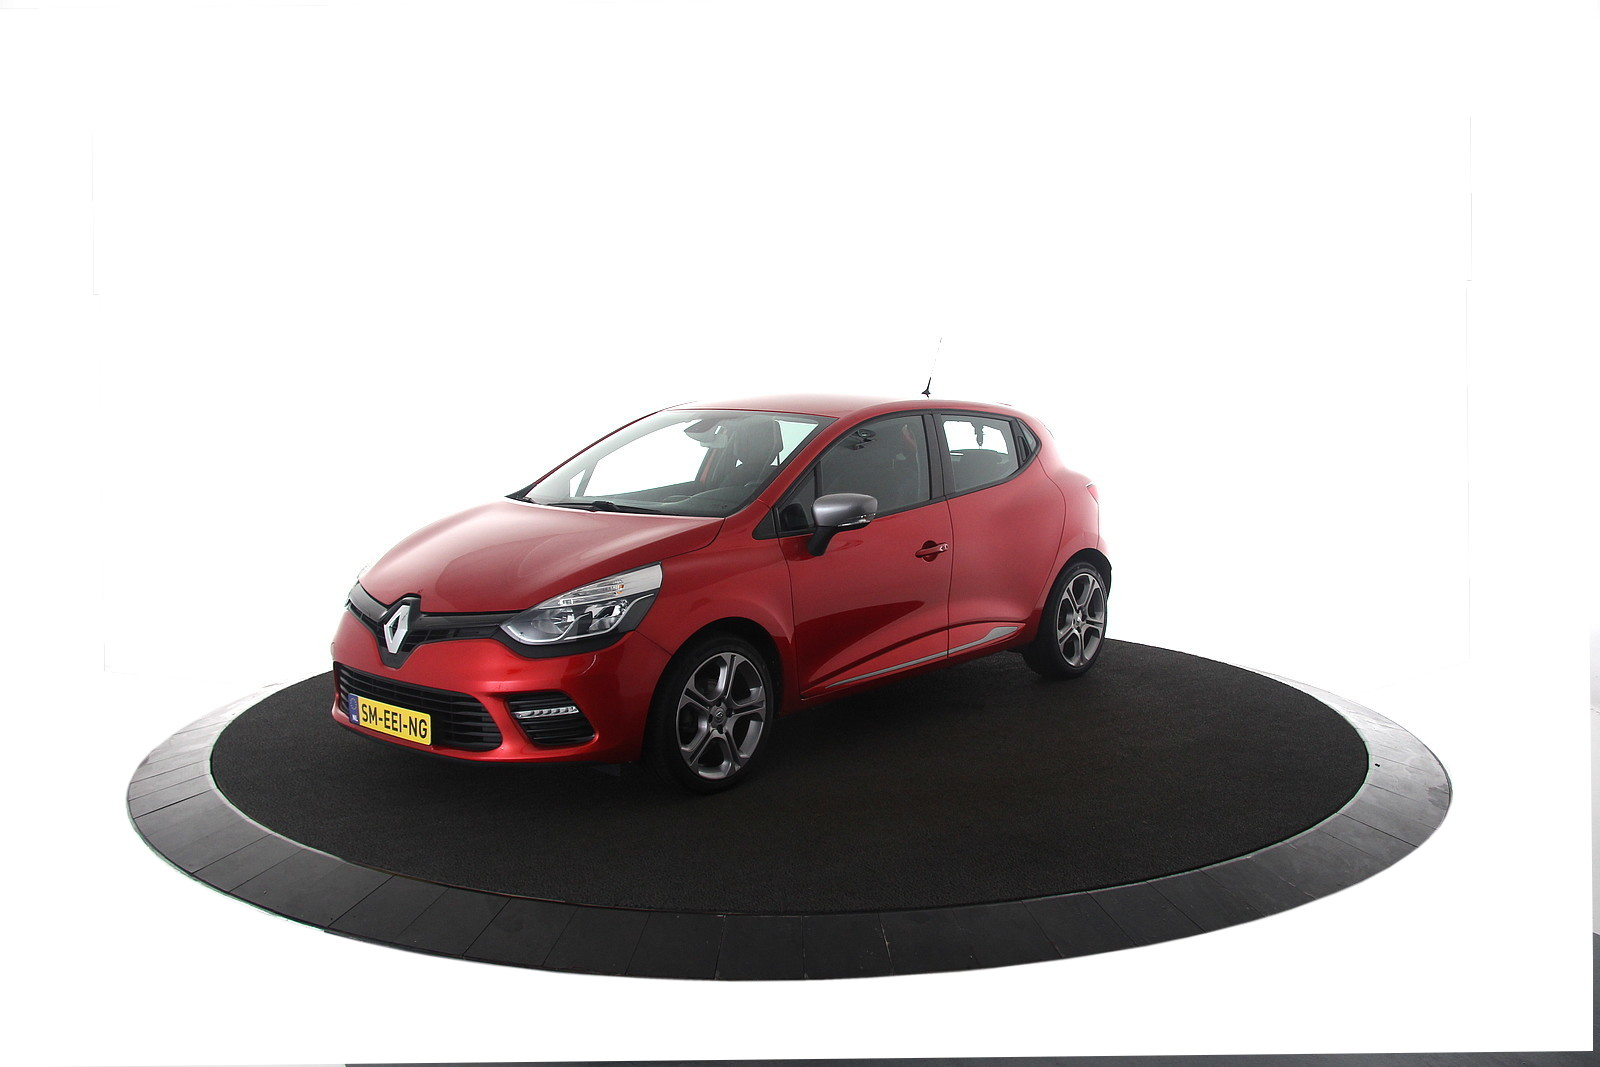 Renault Clio 0.9 TCe GT-Line